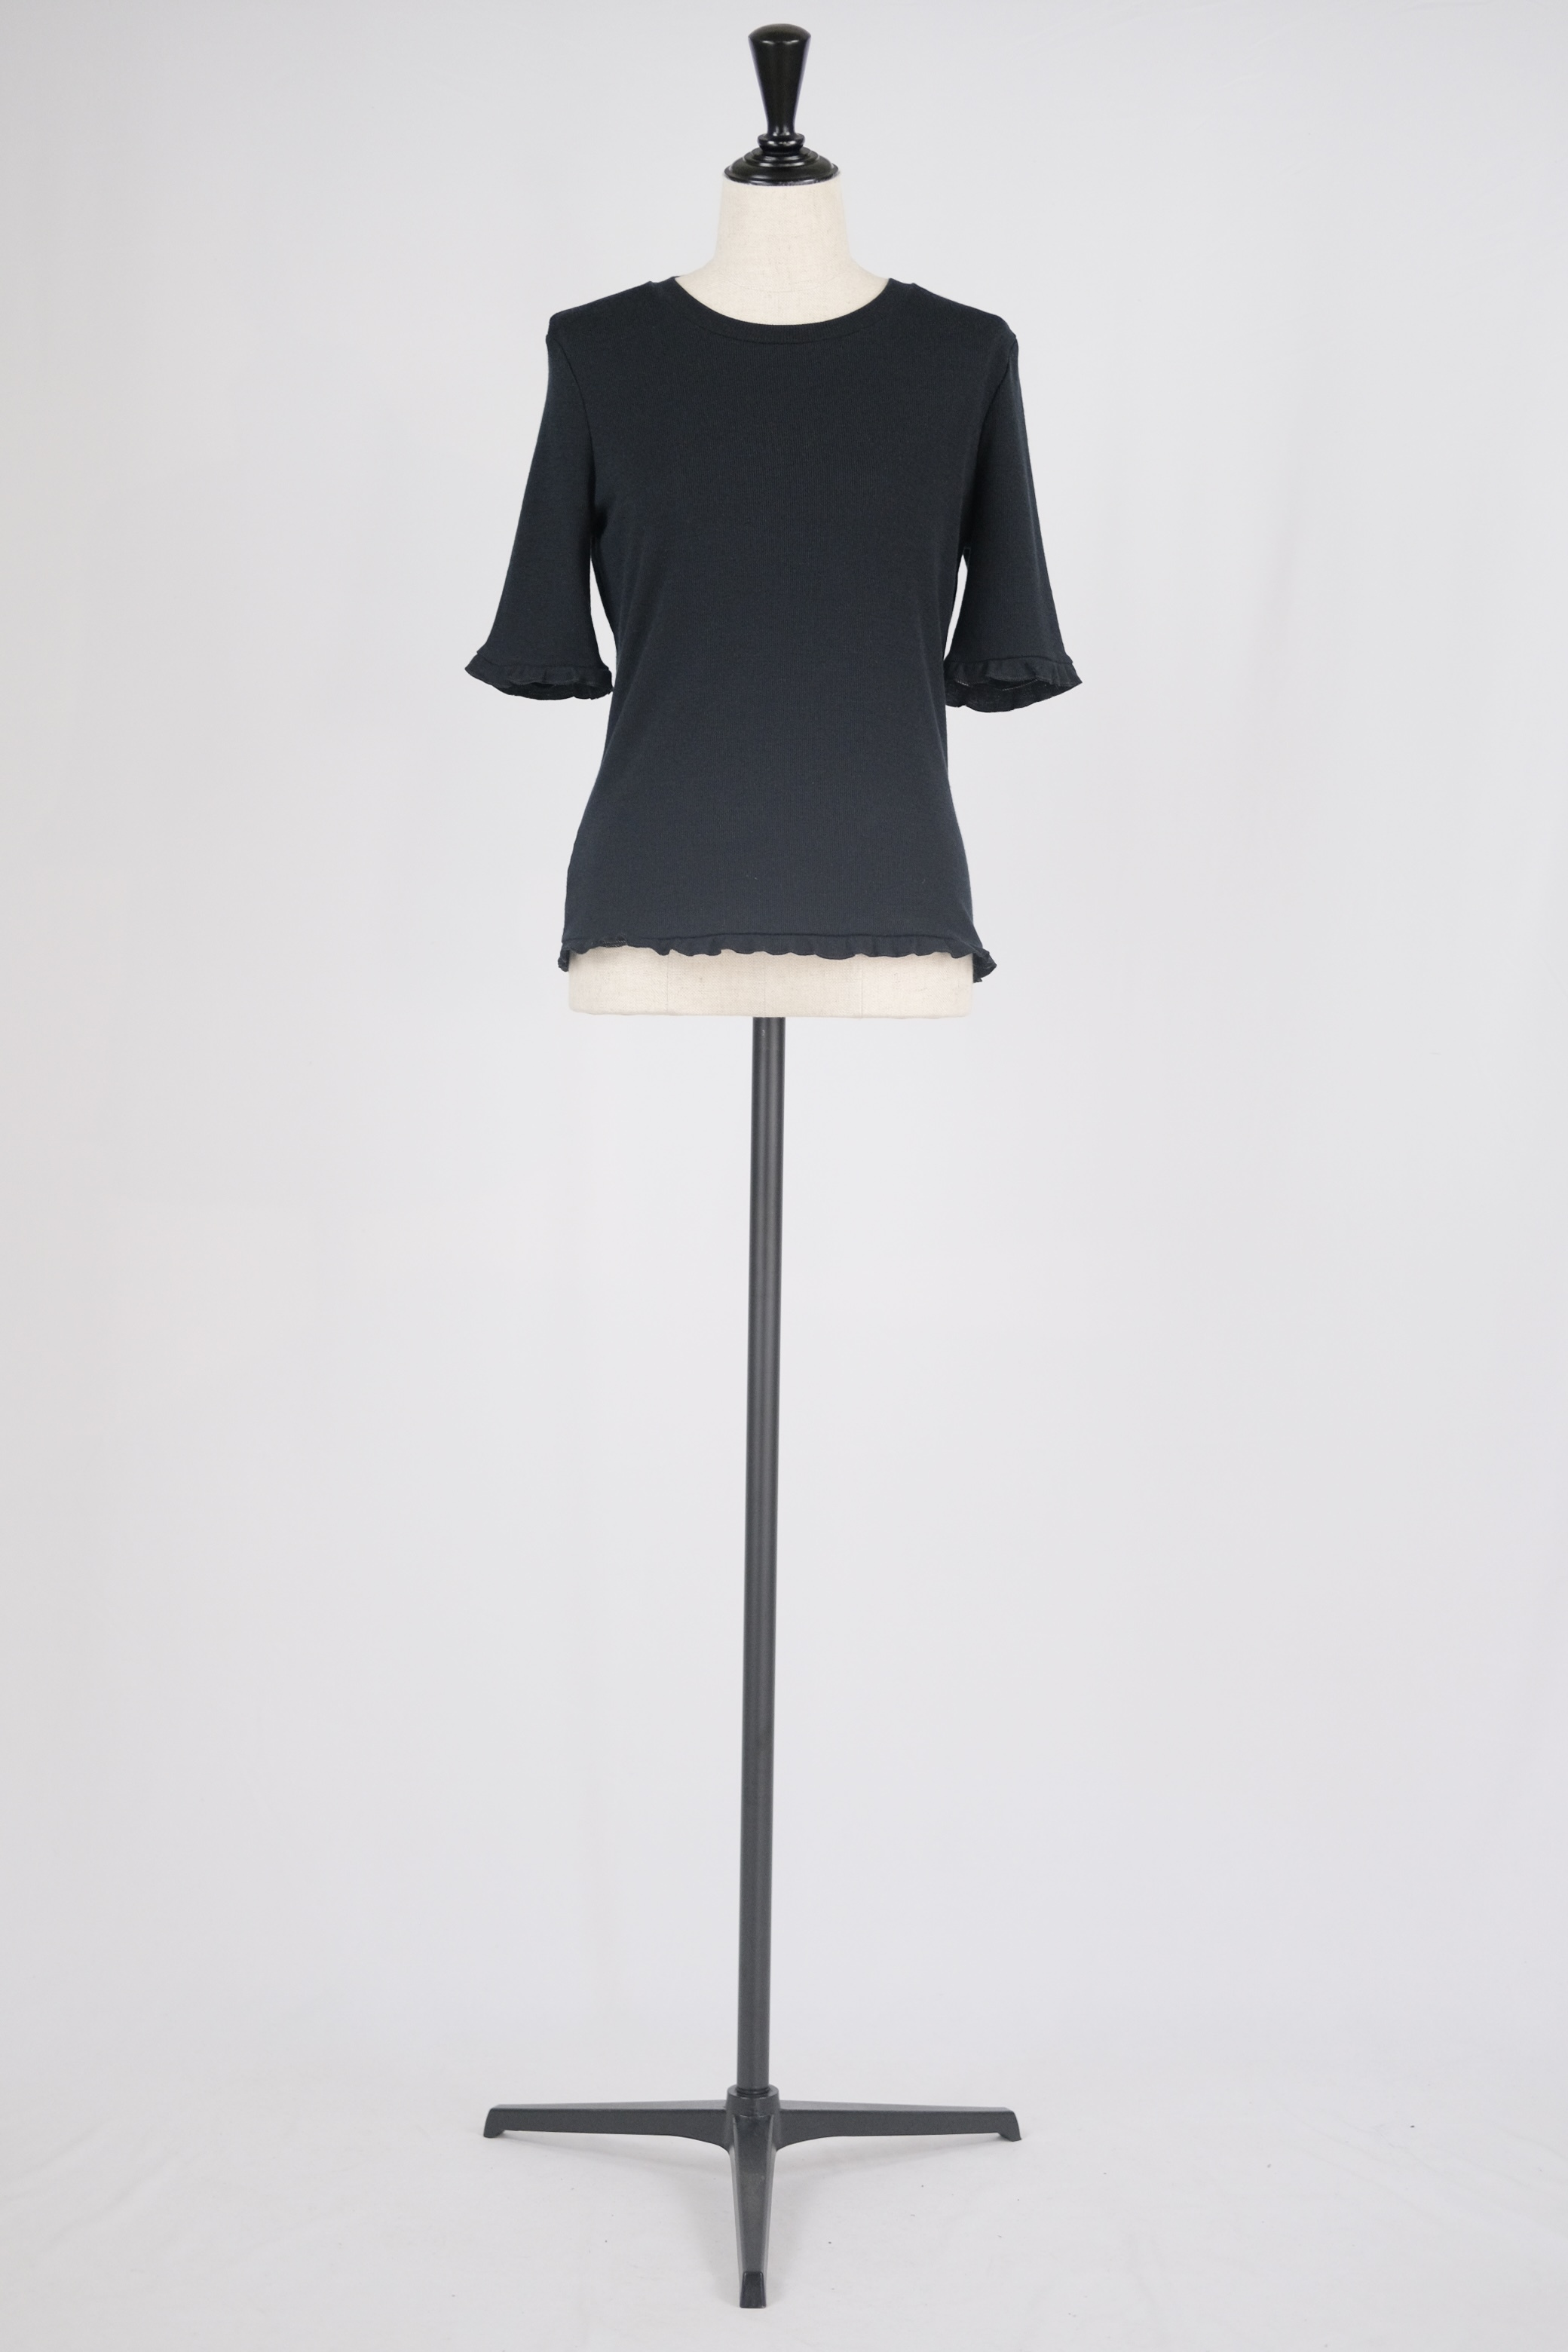 【ABOUT】tops - black